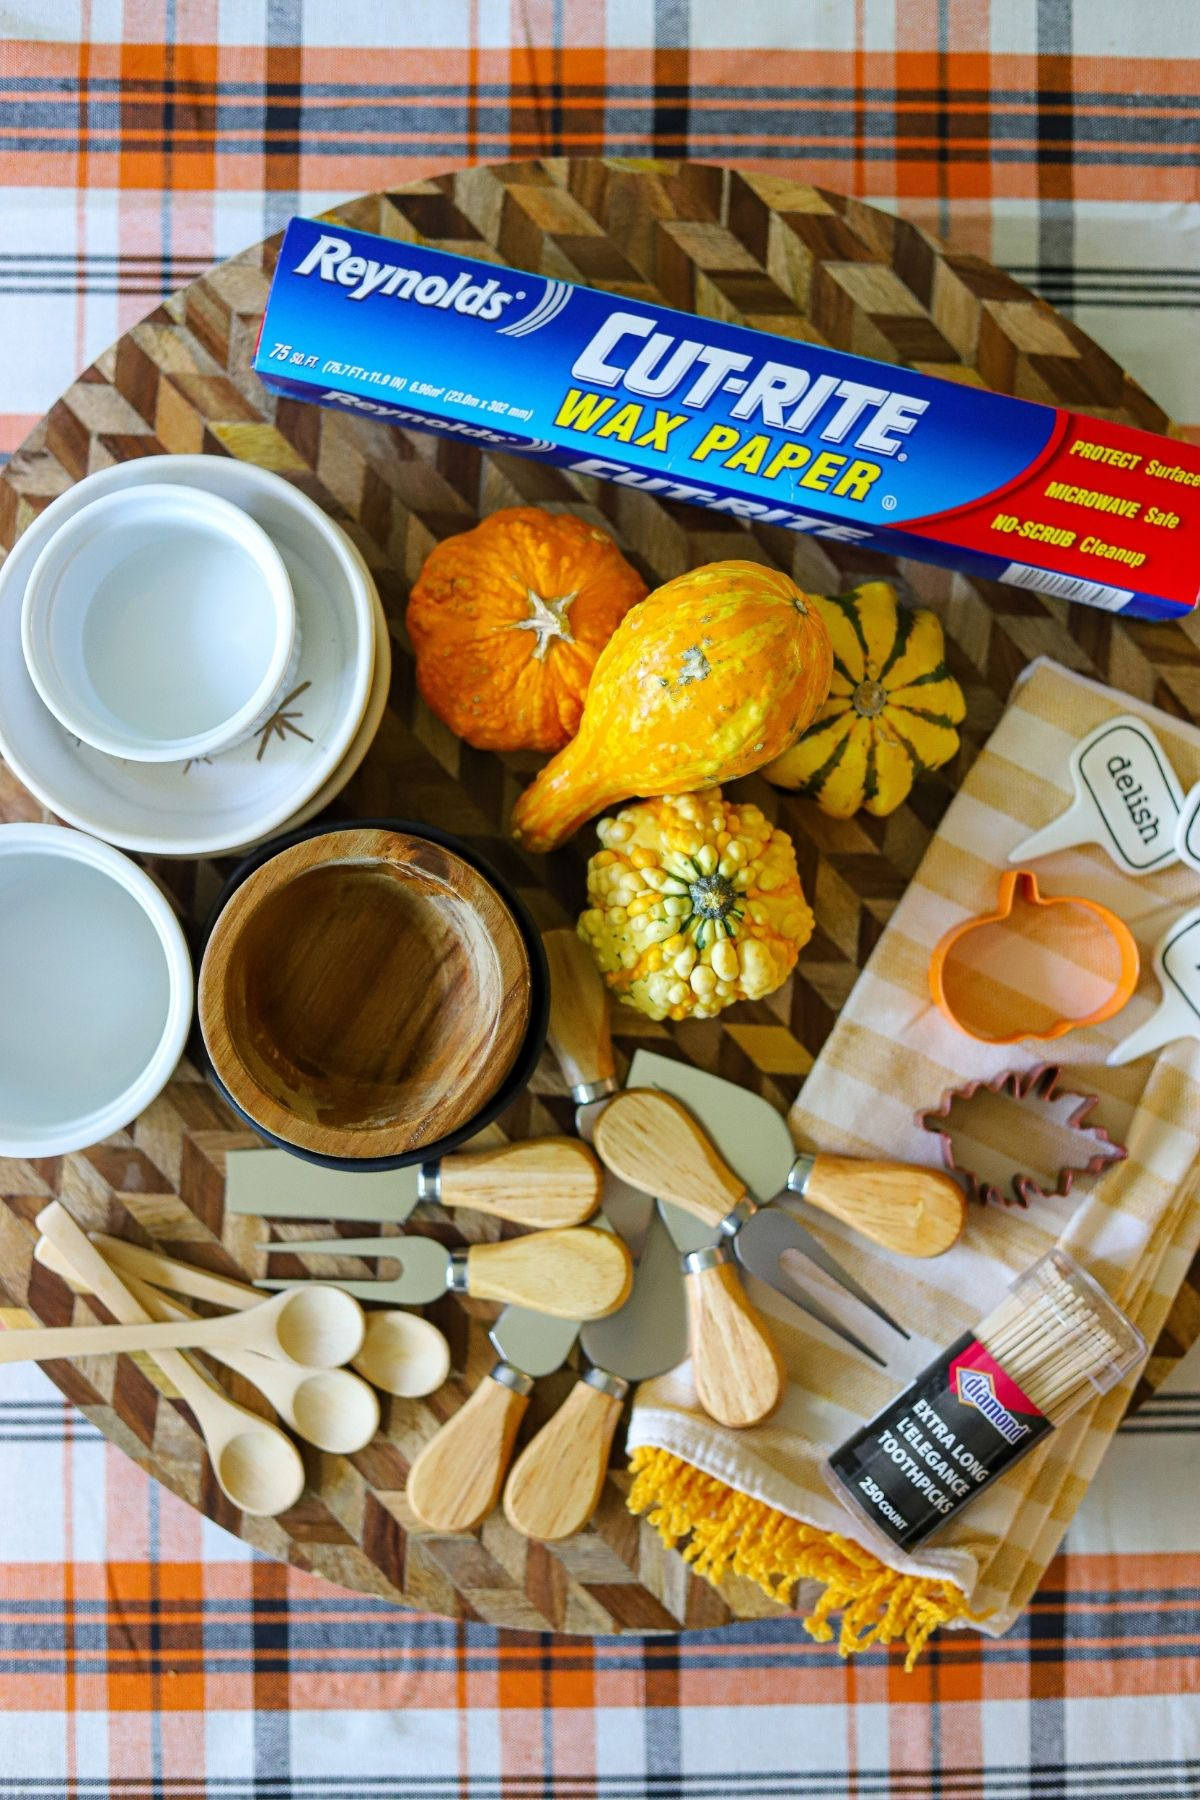 Equipment for a charcuterie board including small bowls, cheese kinves, cookie cutters, wax papers, spoons, and small pumpkins.